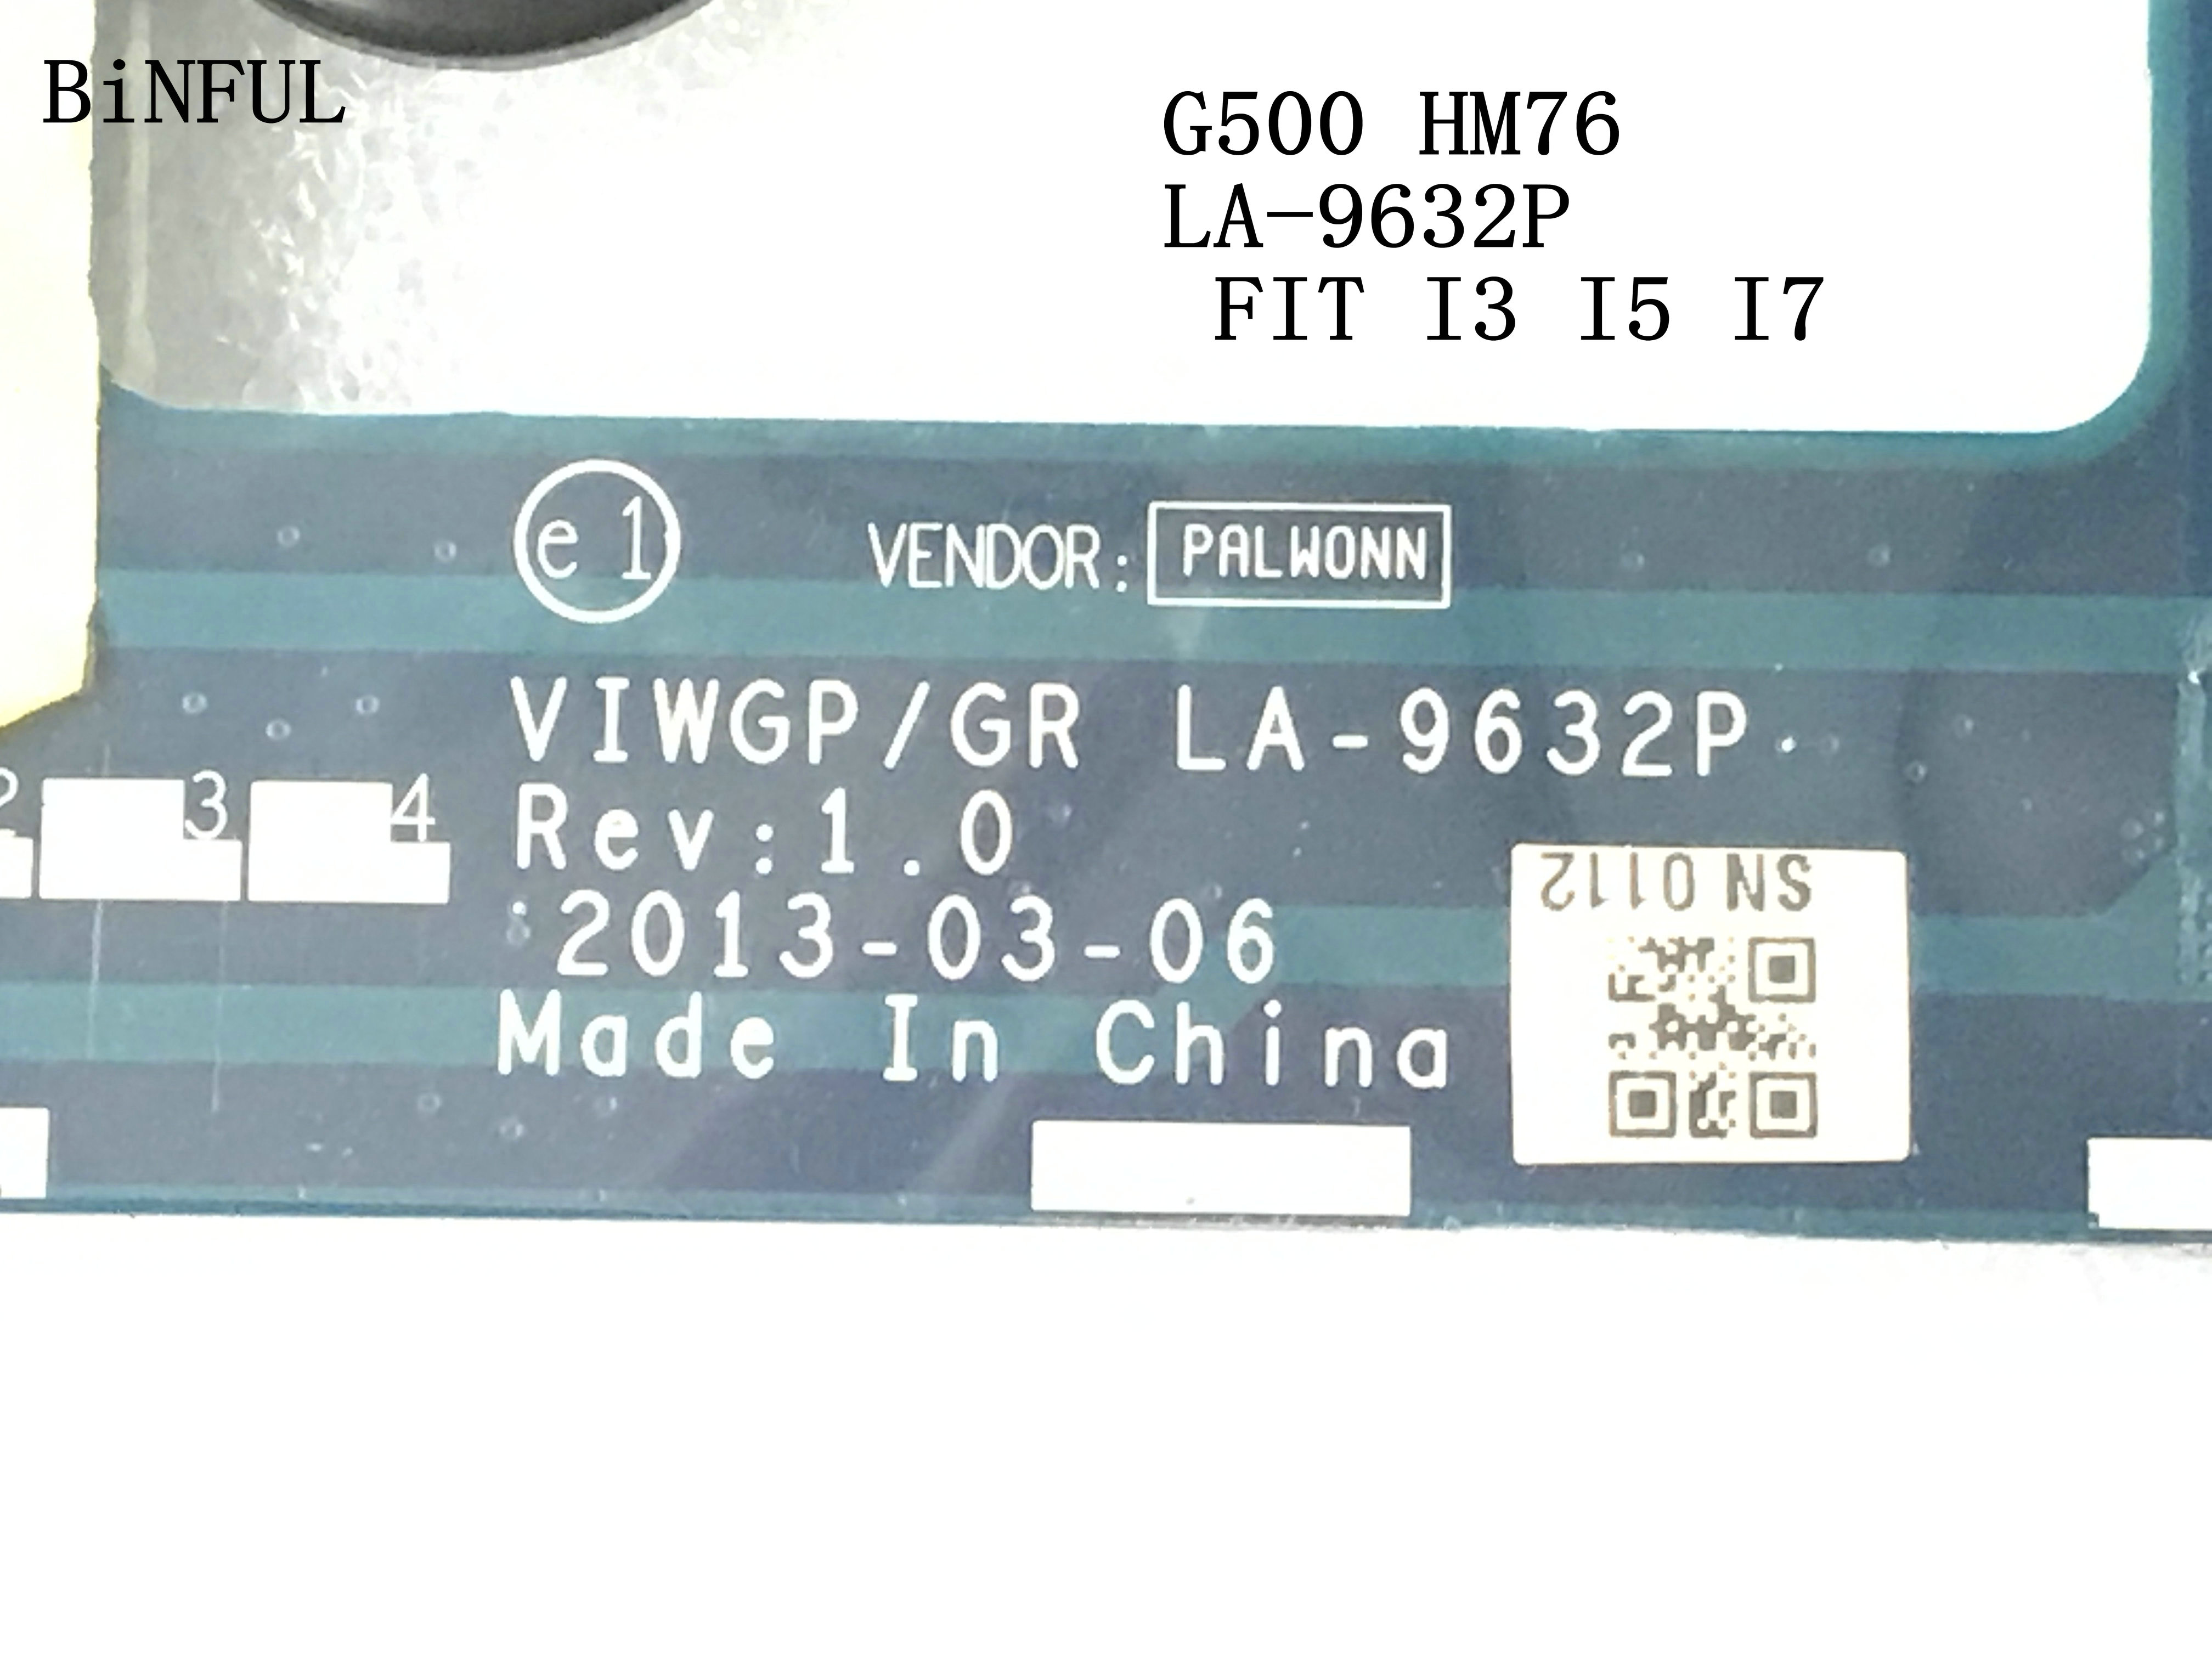 BiNFUL 100 NEW VIWGP GR LA 9632P LAPTOP MOTHERBOARD FOR LENOVO G500 NOTEBOOK PC MAINBOARD SUPPORT